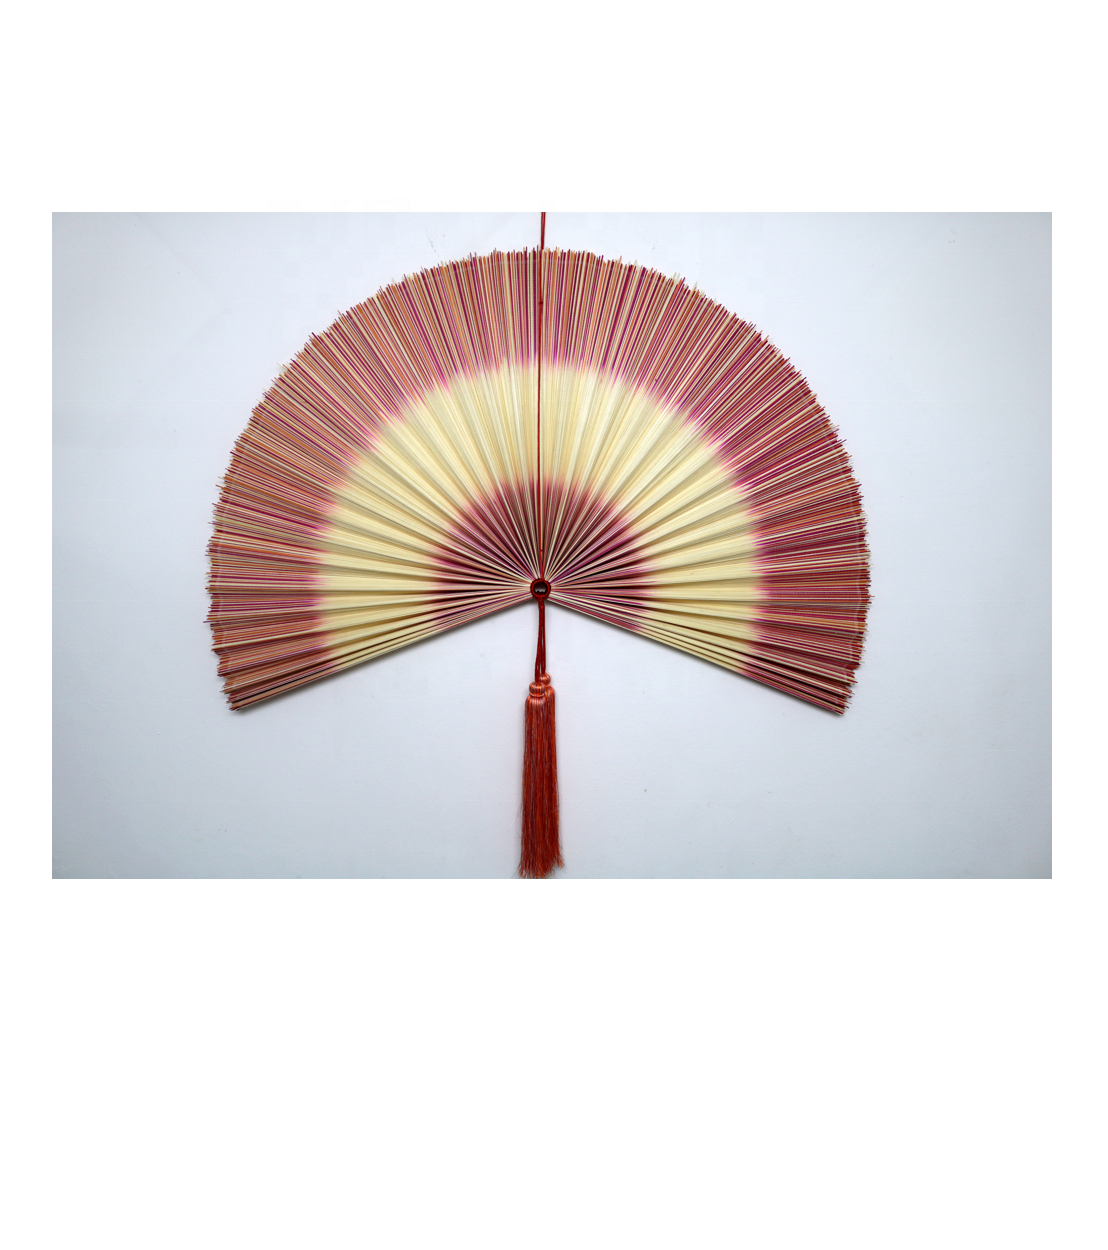 Wholesale bamboo fan bamboo hand fan wooden handmade bamboo fan...